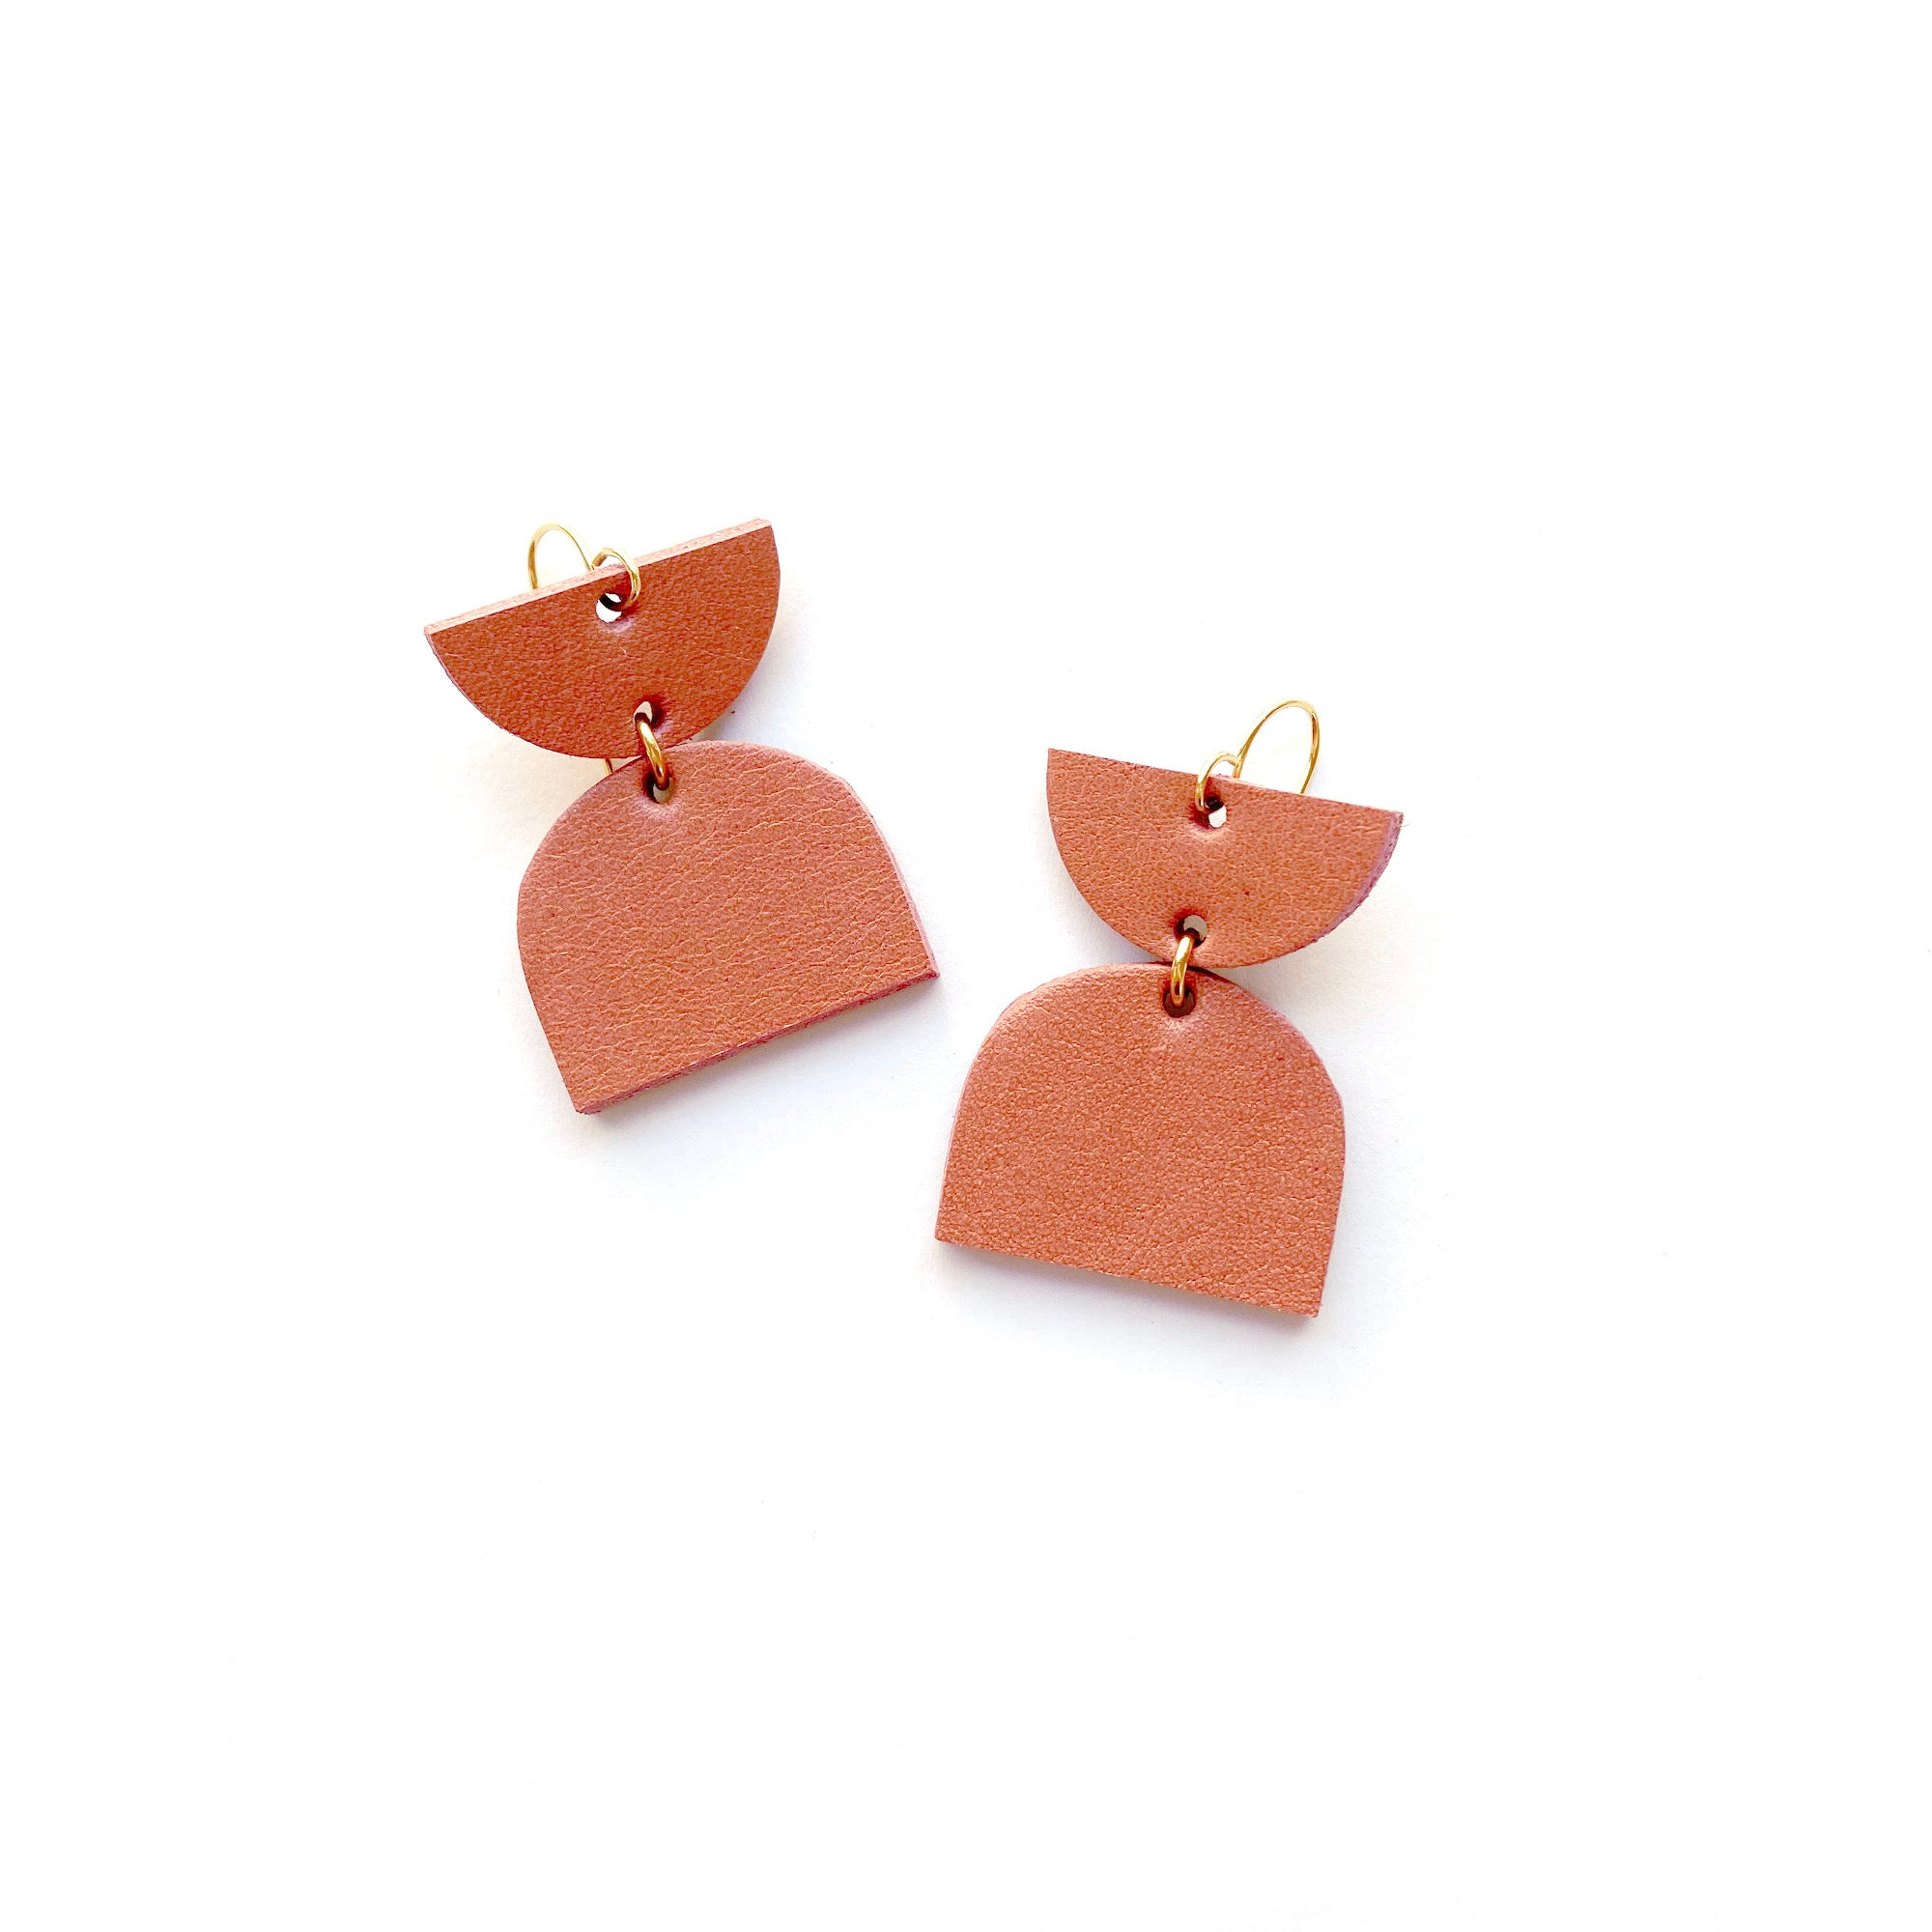 Geometric earrings by Two boss beads